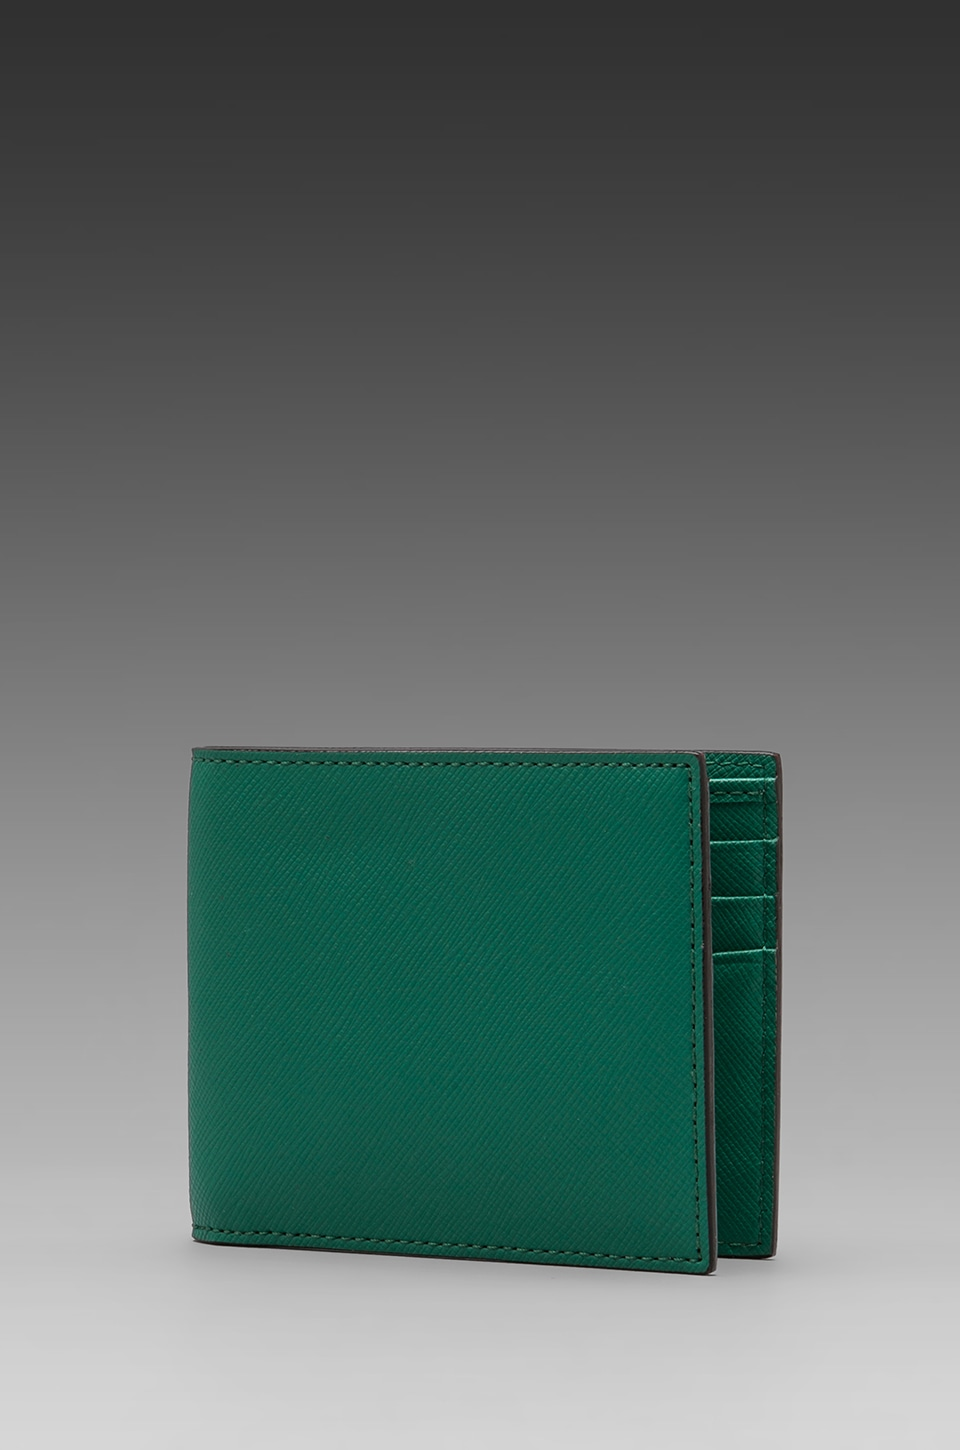 Jack Spade Wesson Leather Bill Holder Wallet in Fresh Green/Black & White